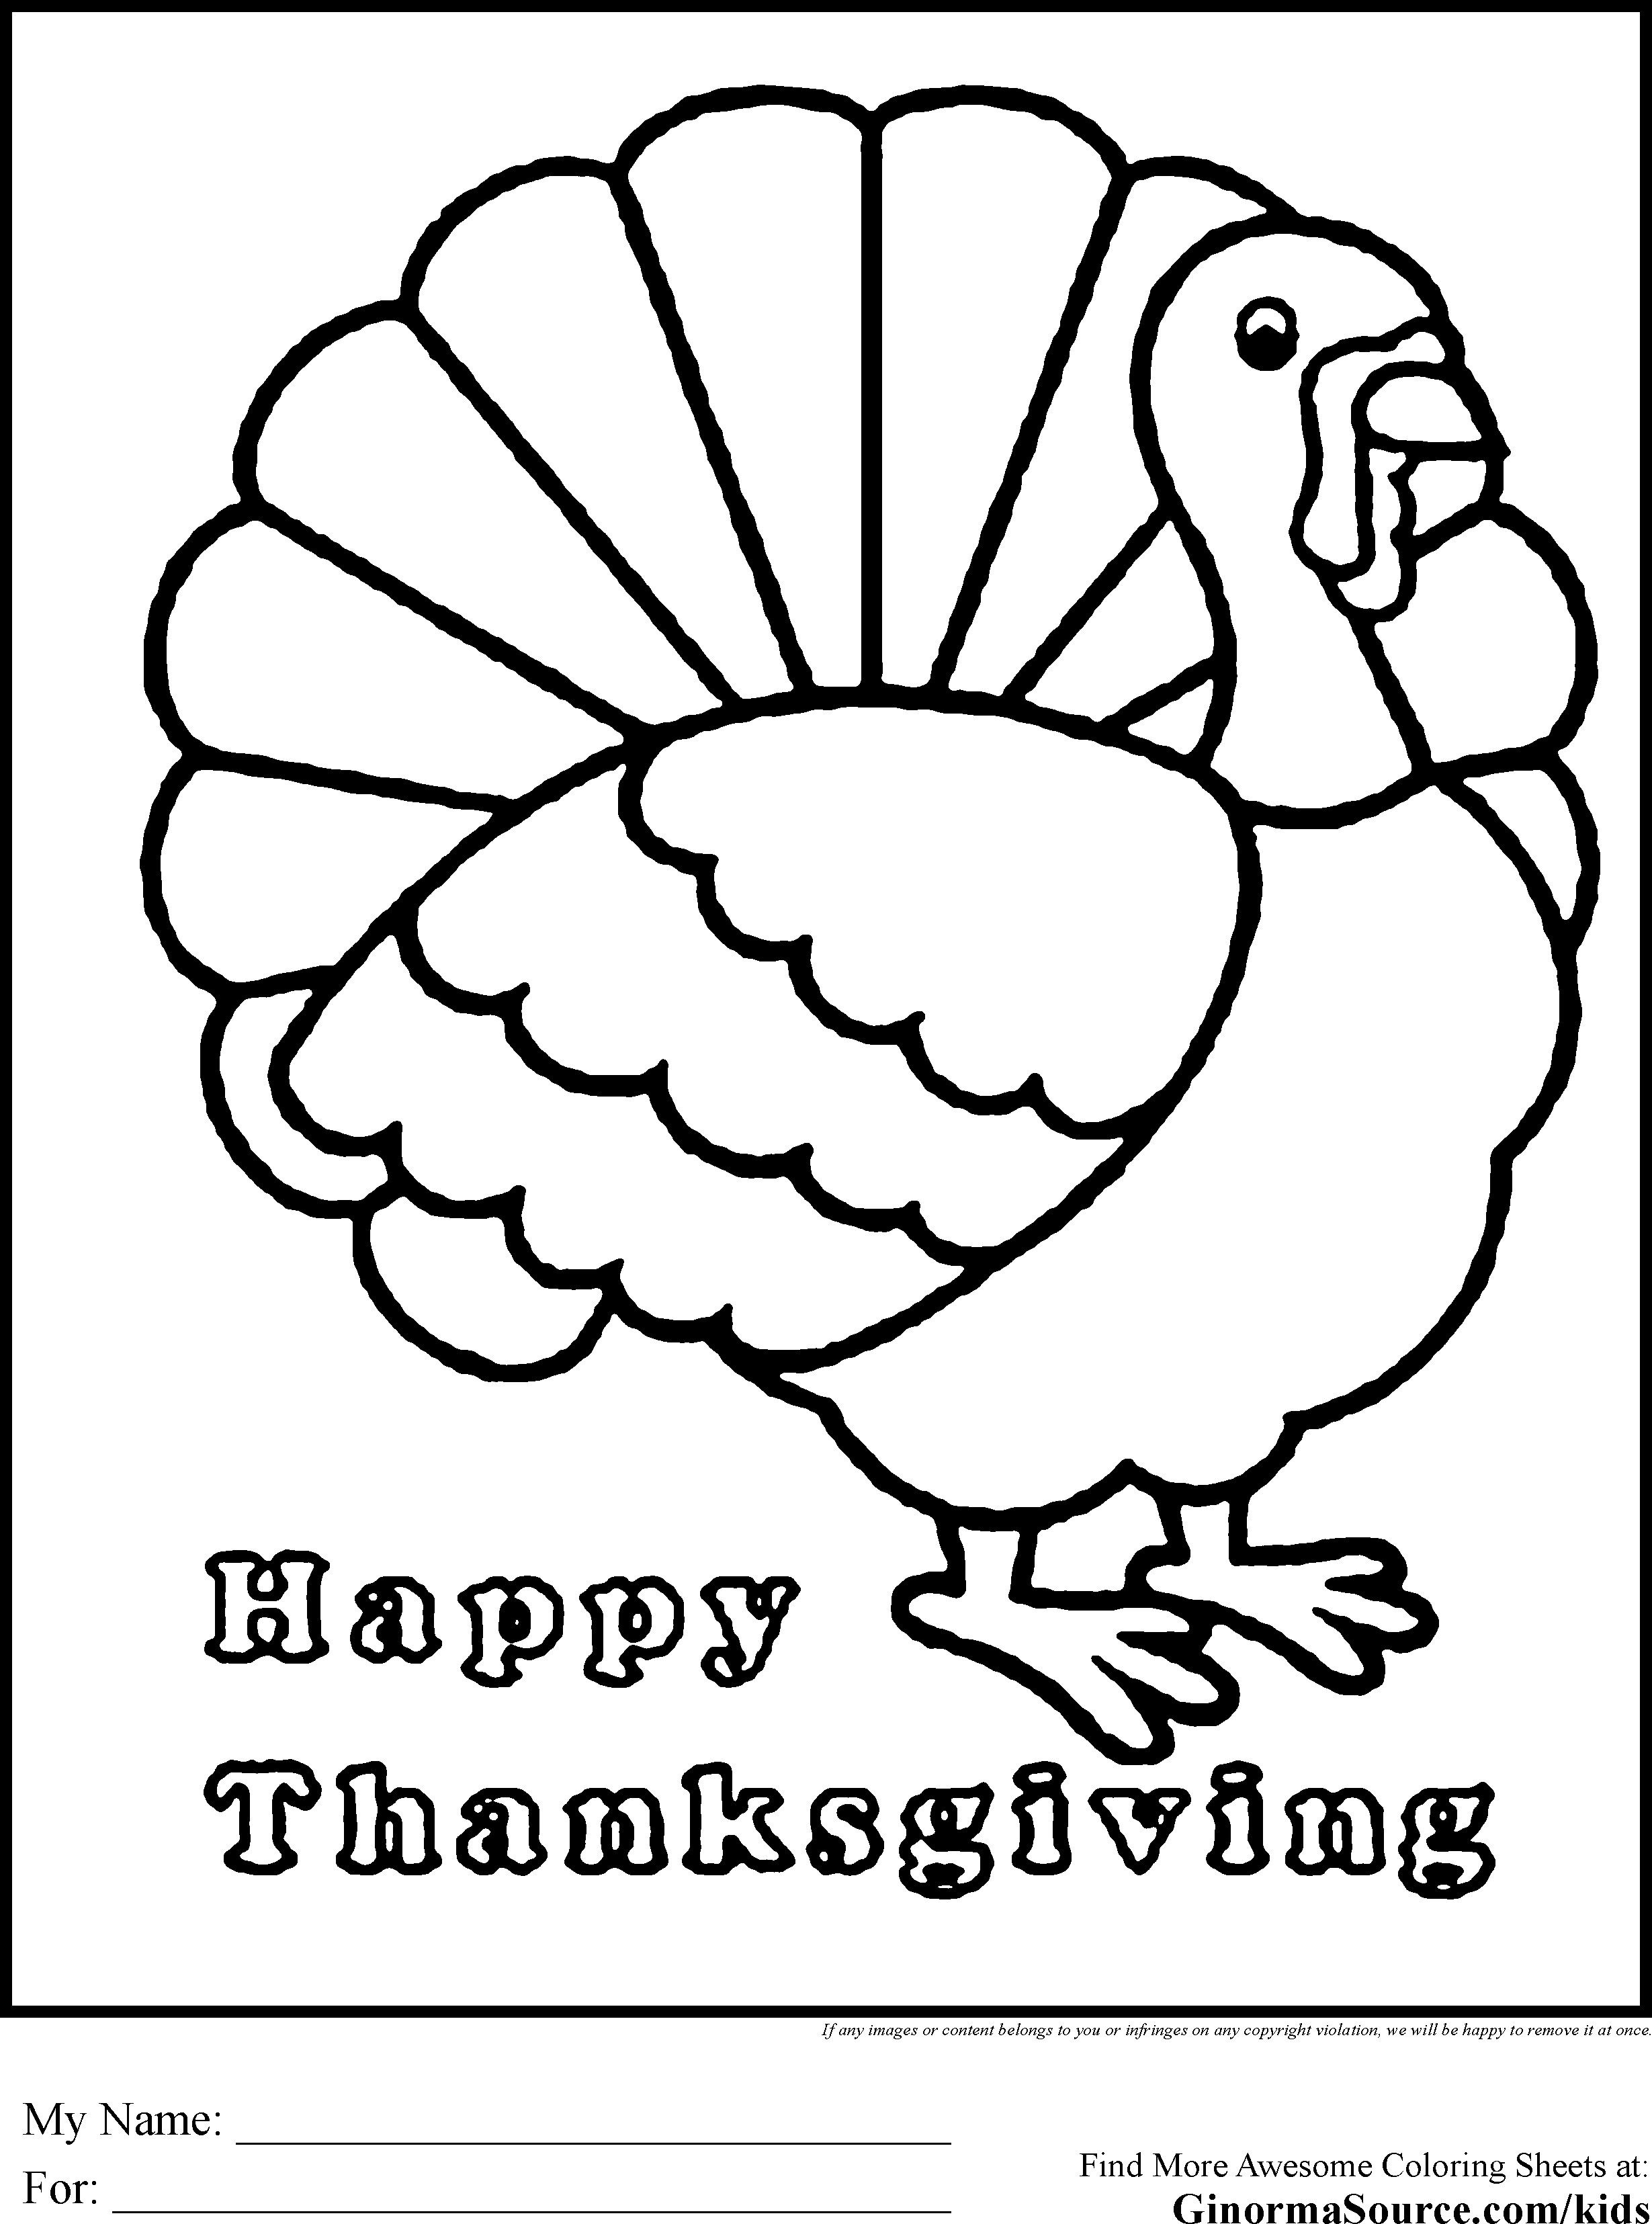 20 Free Pictures For: Printable Thanksgiving Coloring Pages. Temoon - Free Printable Turkey Coloring Pages